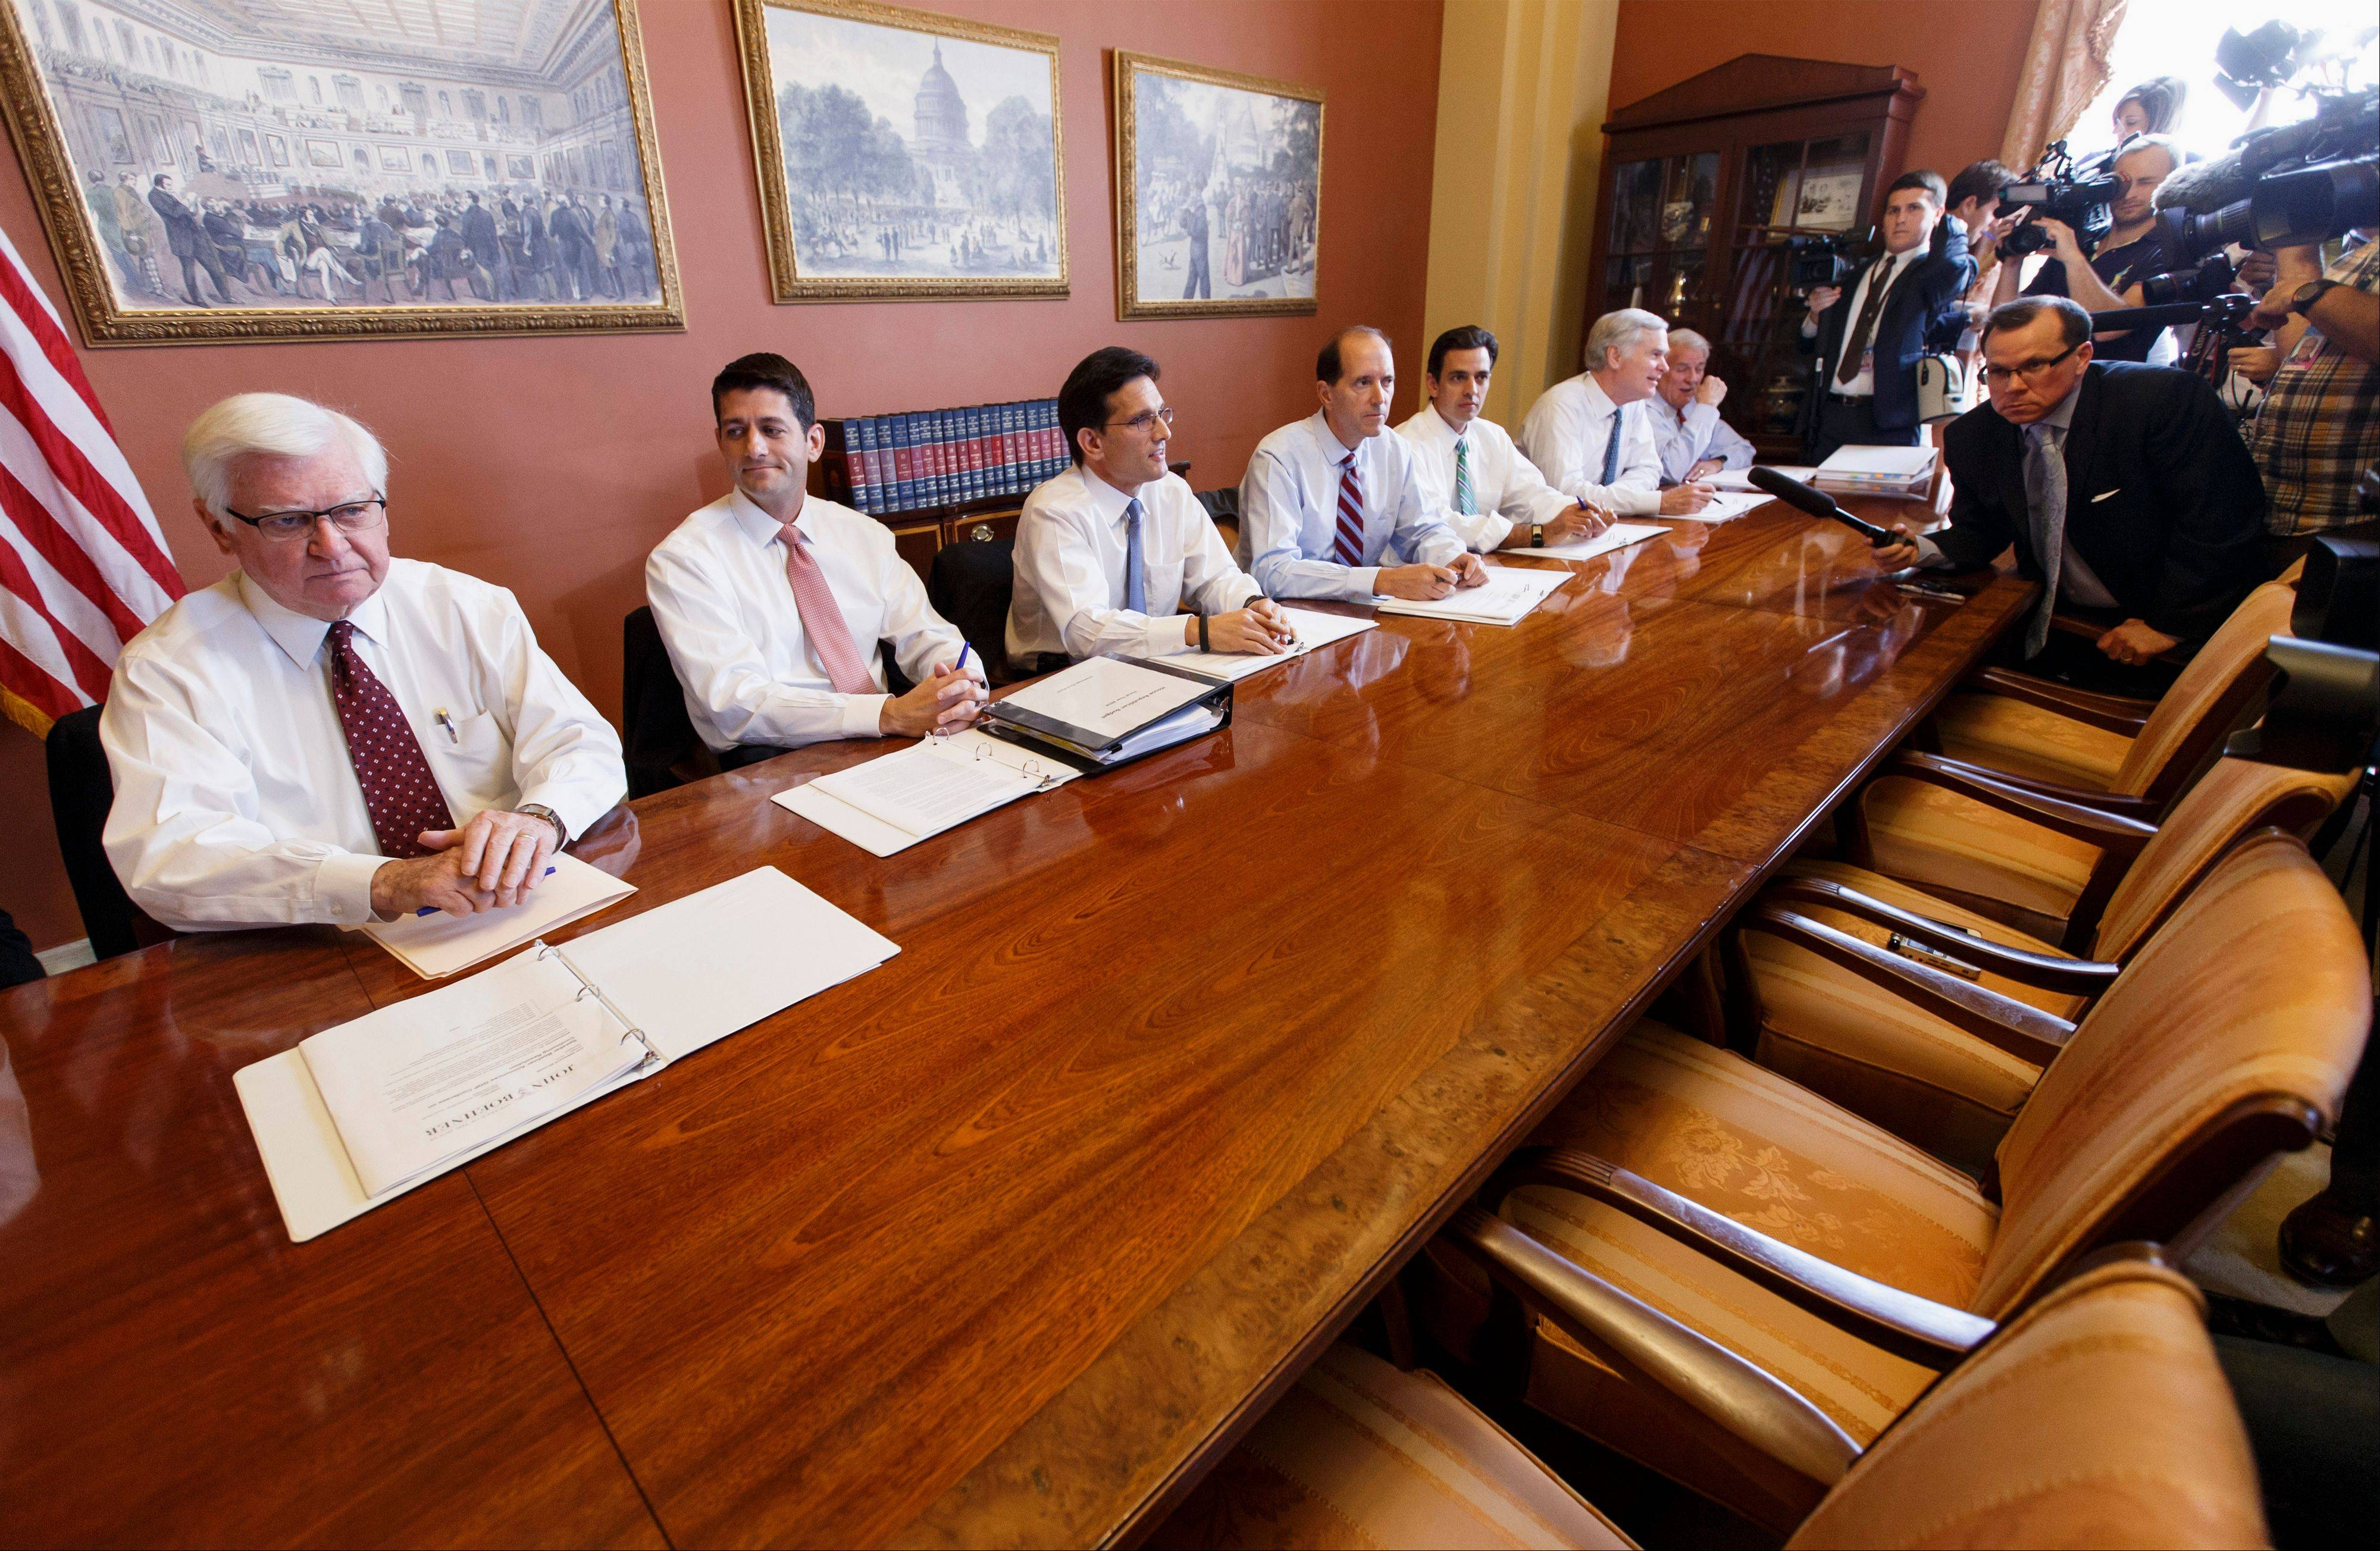 House Majority Leader Eric Cantor of Va., third from left, meets with House Republican conferees Tuesday on Capitol Hill in Washington. Cantor said the chairs opposite them were intended for Democrats to join in the discussions, but he said they declined. From left are House Appropriations Chairman Rep. Hal Rogers, R-Ky.; House Budget Committee Chairman Rep. Paul Ryan, R-Wis.; Cantor; House Ways and Means Committee Chairman Rep. Dave Camp, R-Mich.; Rep. Tom Graves, R-Ga., and other House members.